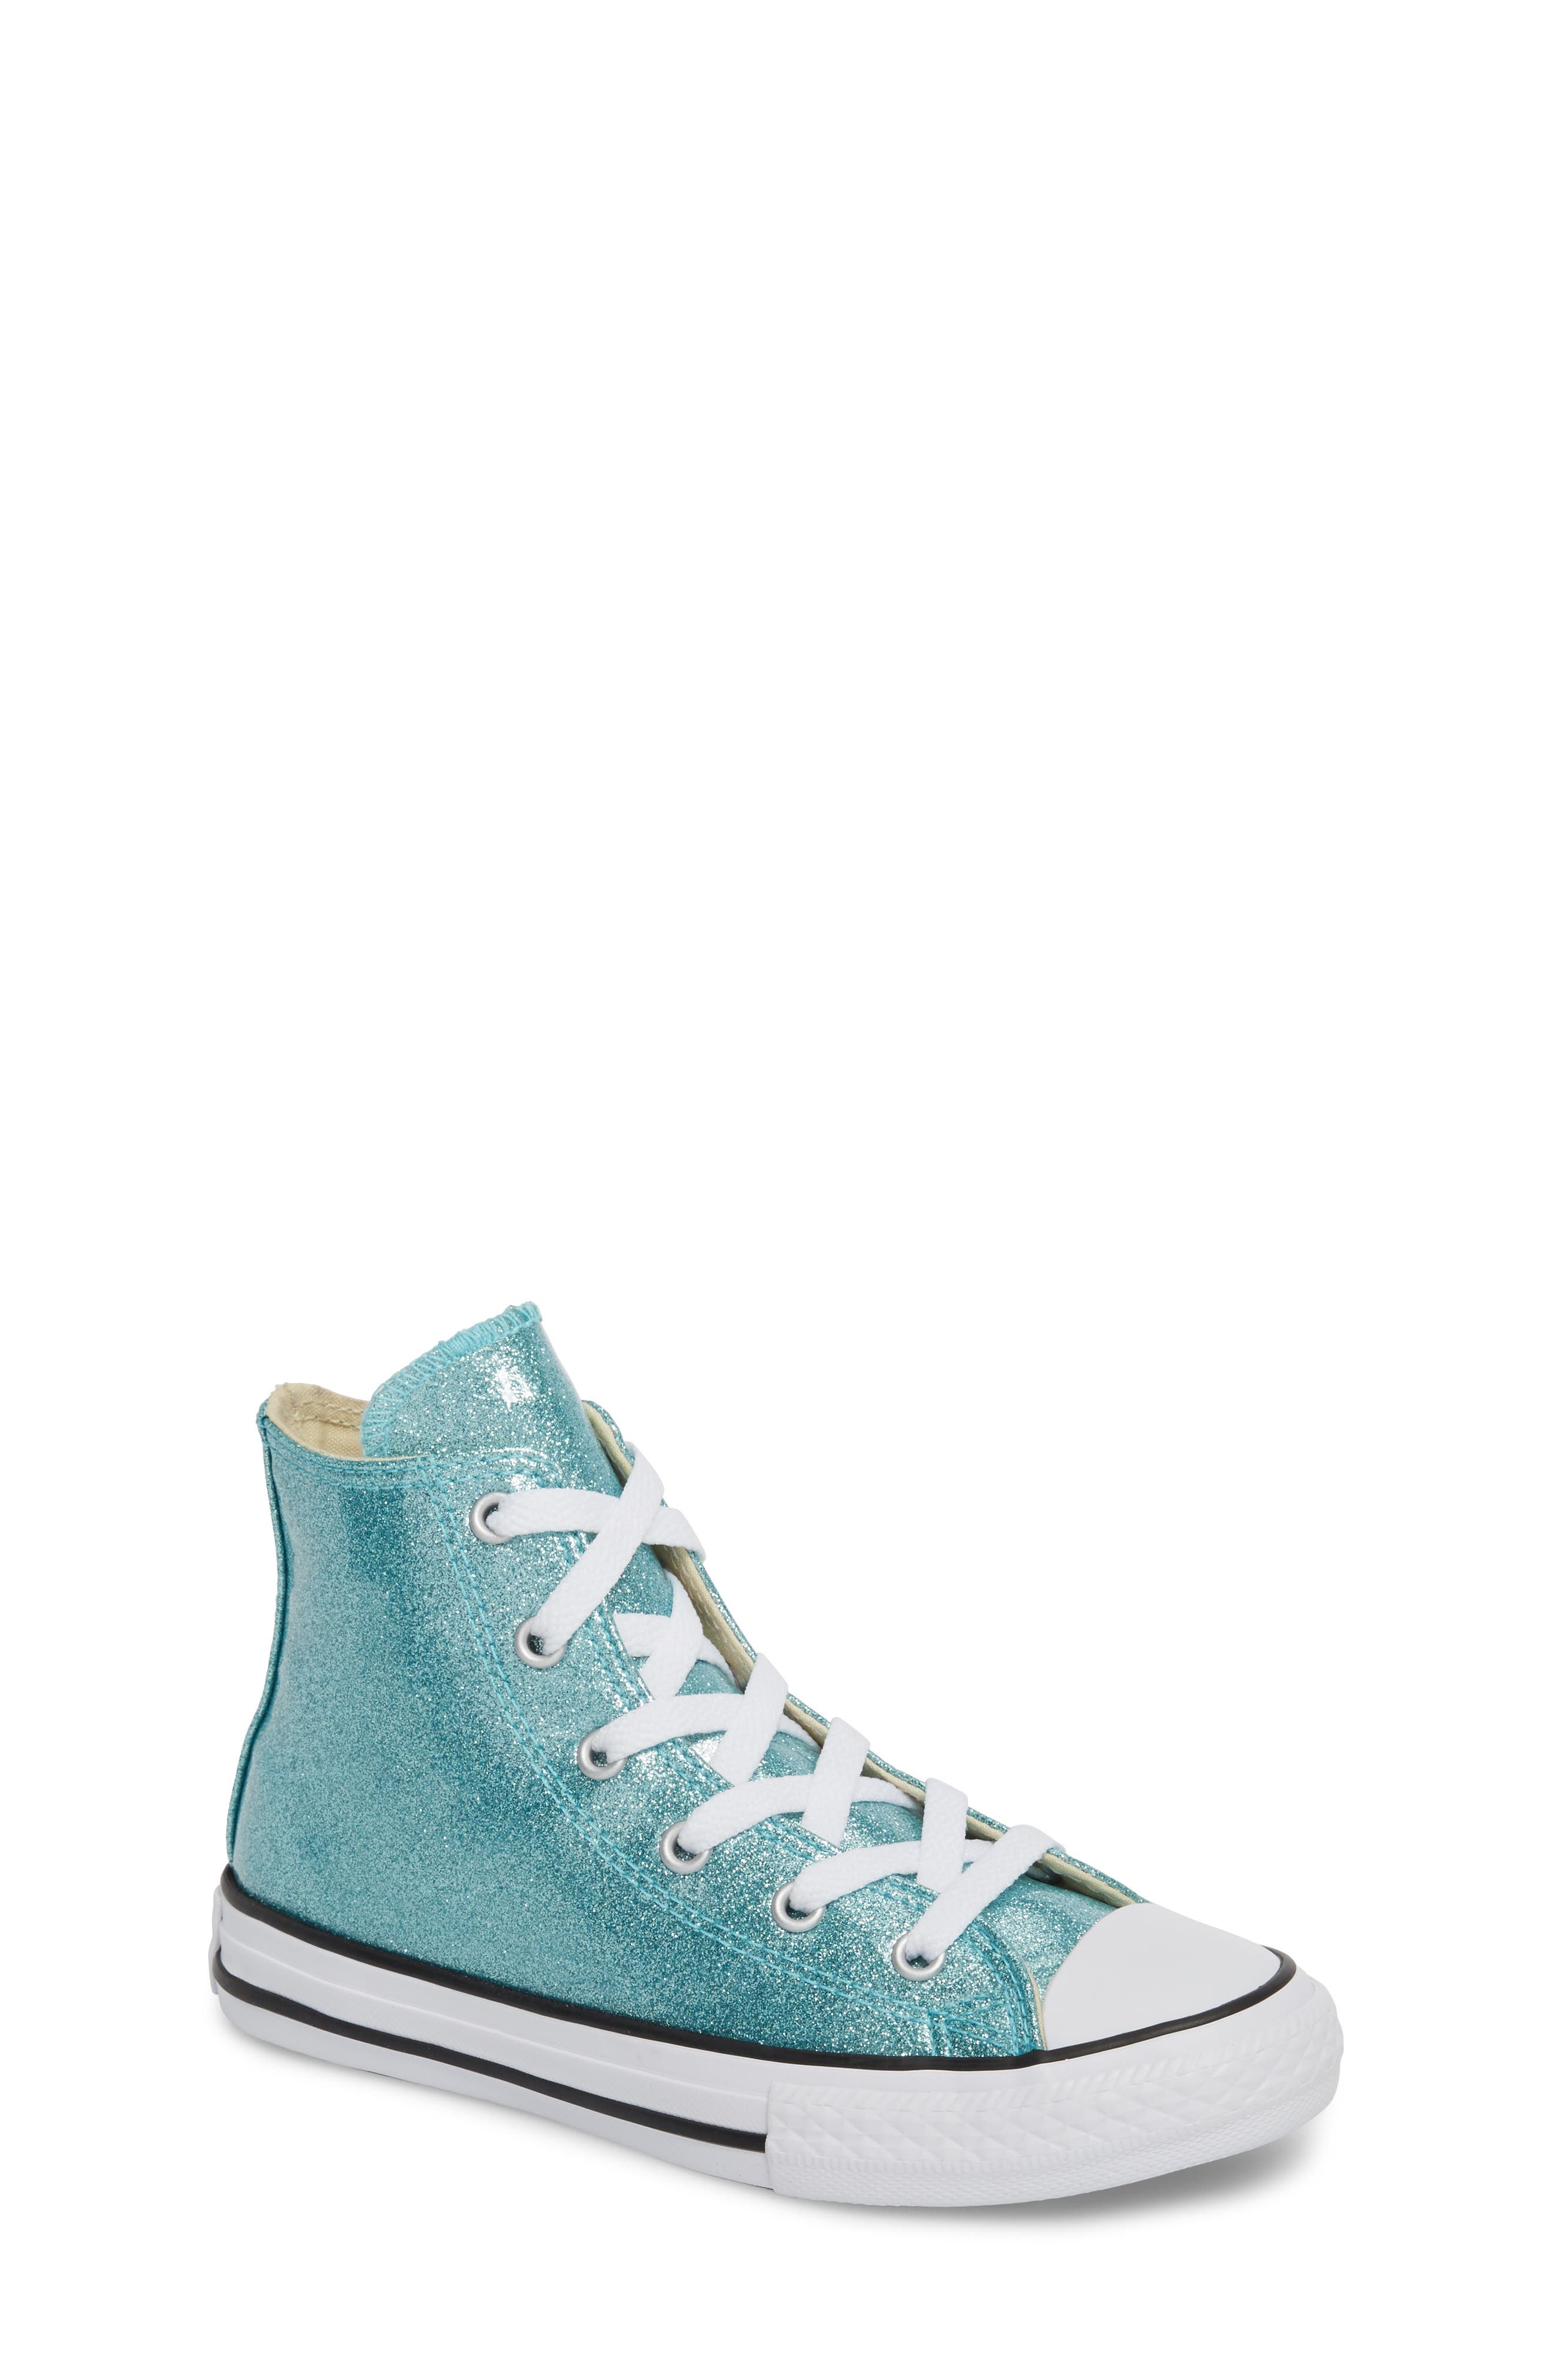 All Star<sup>®</sup> Glitter High Top Sneaker,                             Main thumbnail 1, color,                             400